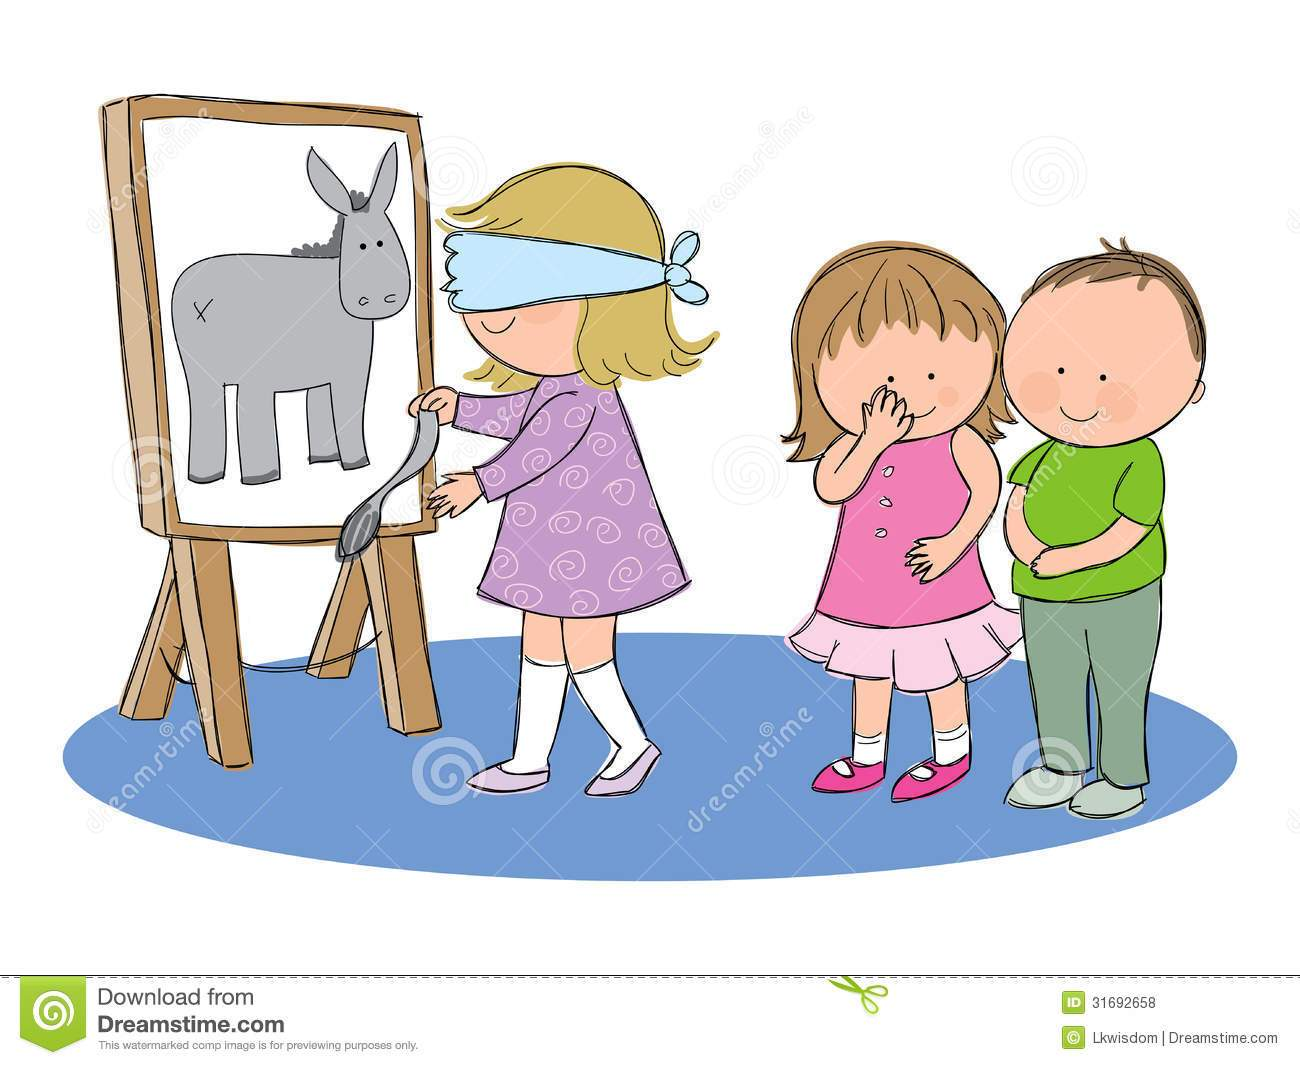 Pin the tail on the donkey clipart 7 » Clipart Portal.